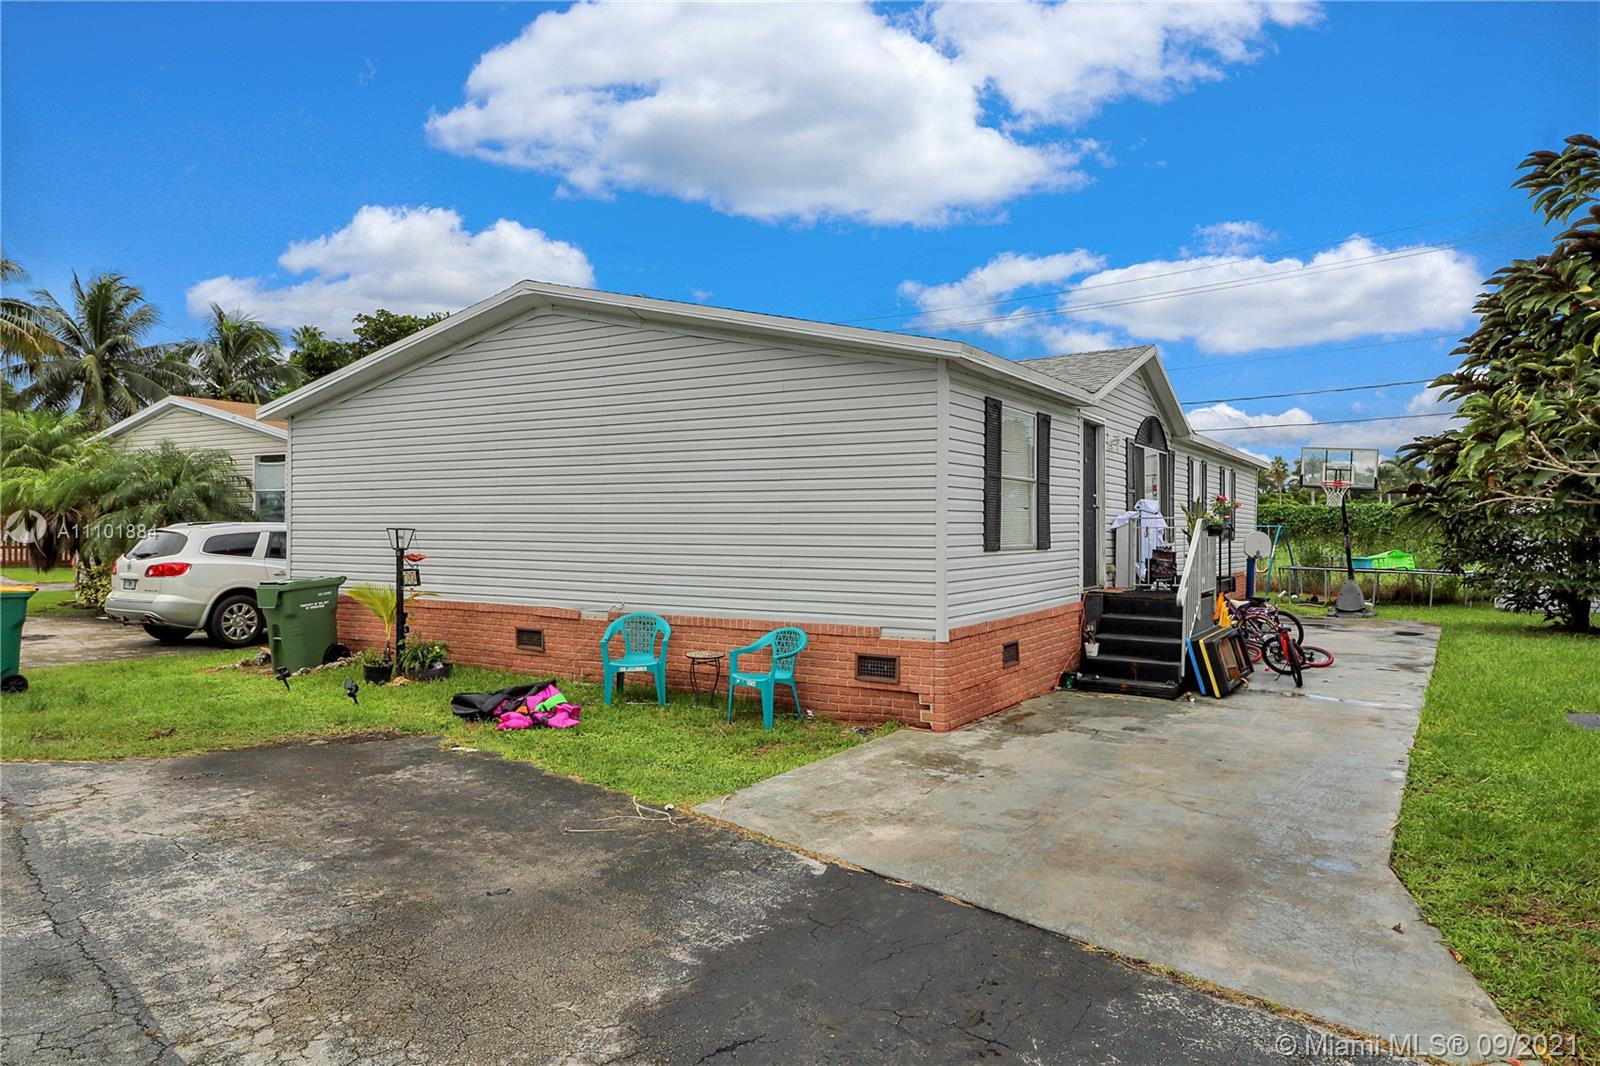 Residential For Sale at 220 Homestead